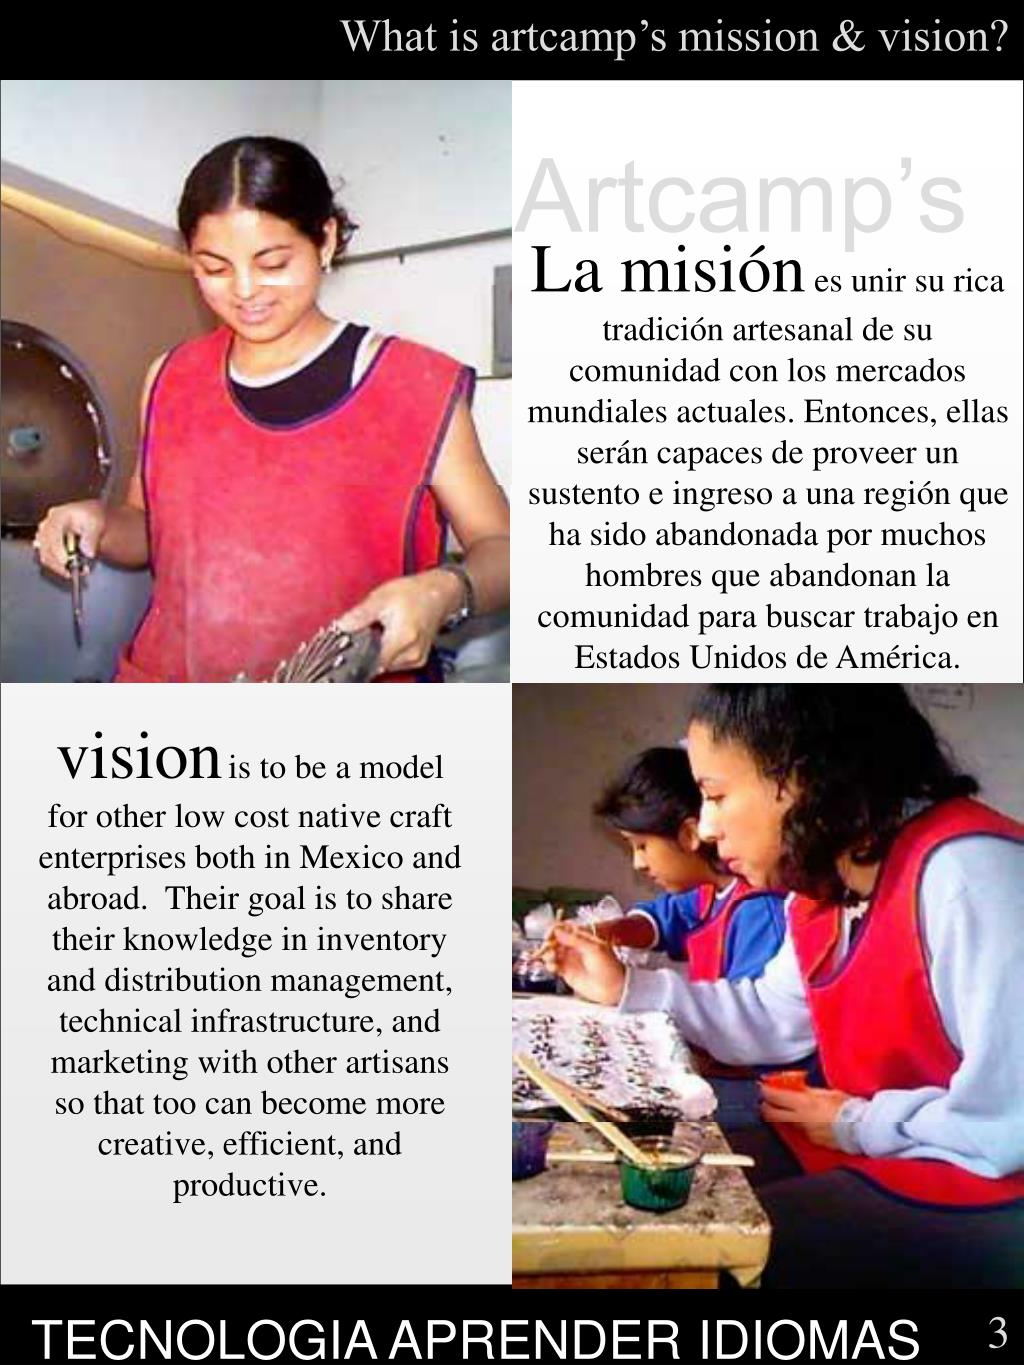 What is artcamp's mission & vision?